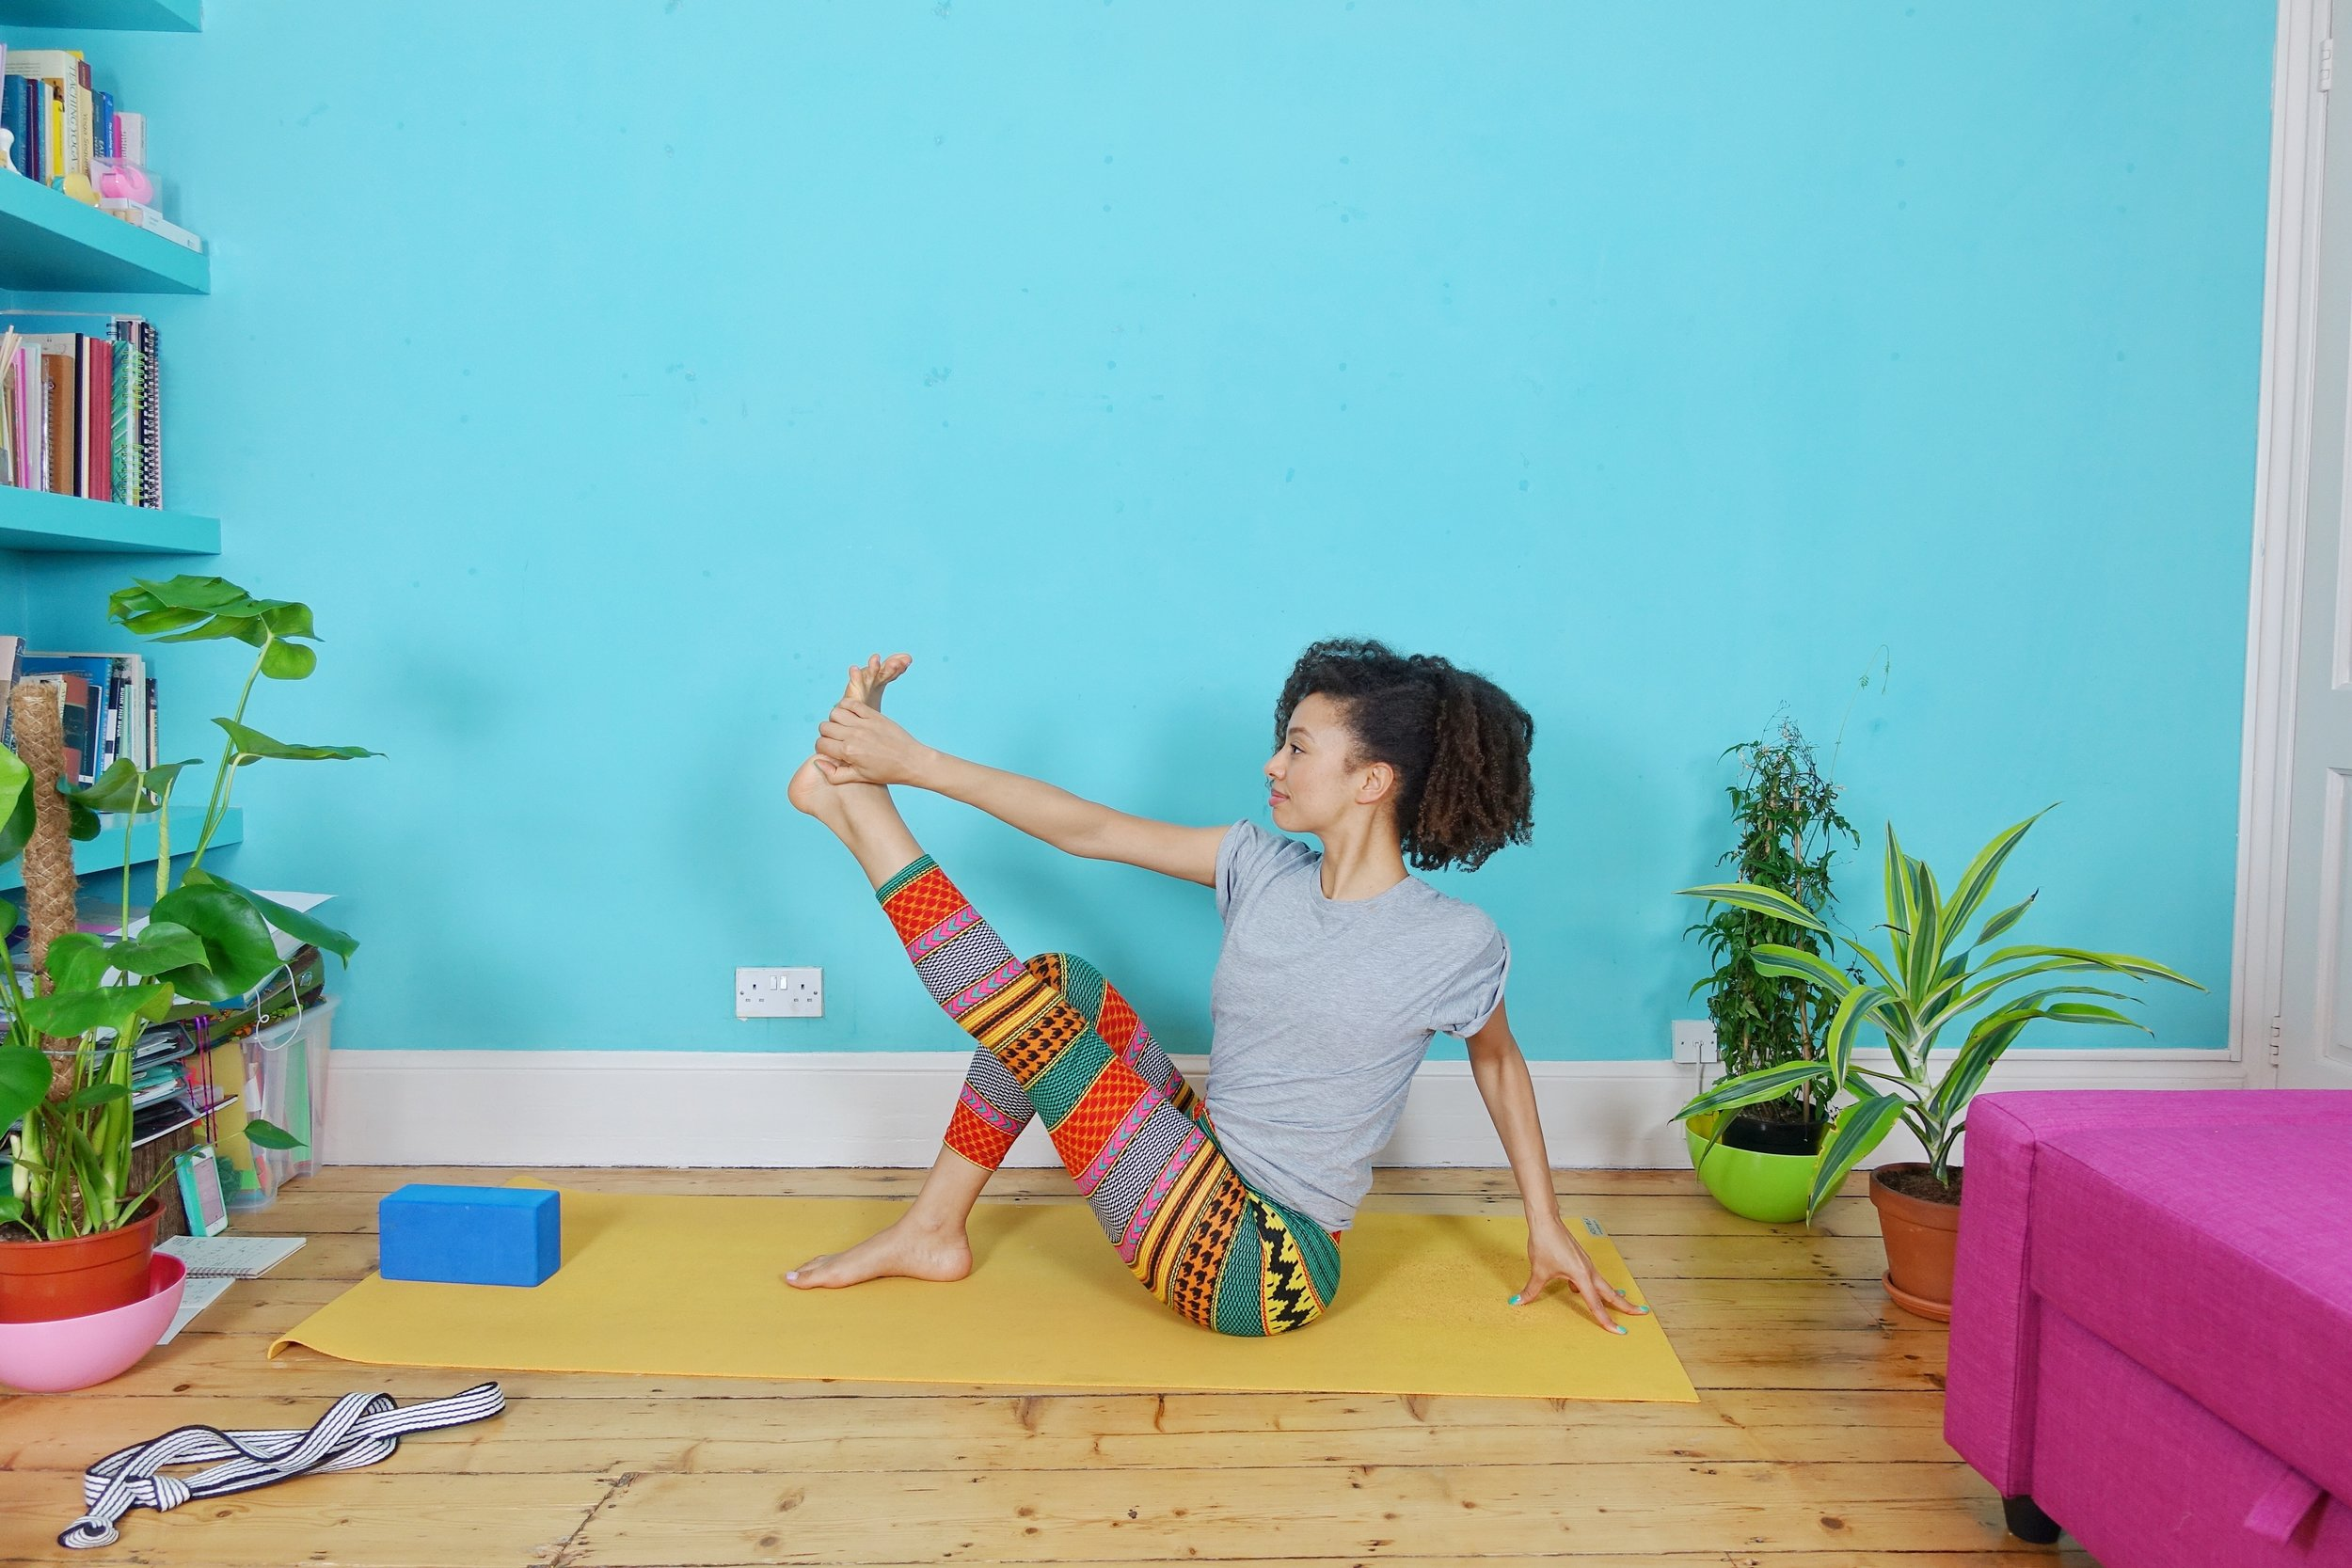 Yoga with Dionne on Youtube - Free yoga videos with a range of lengths and styles